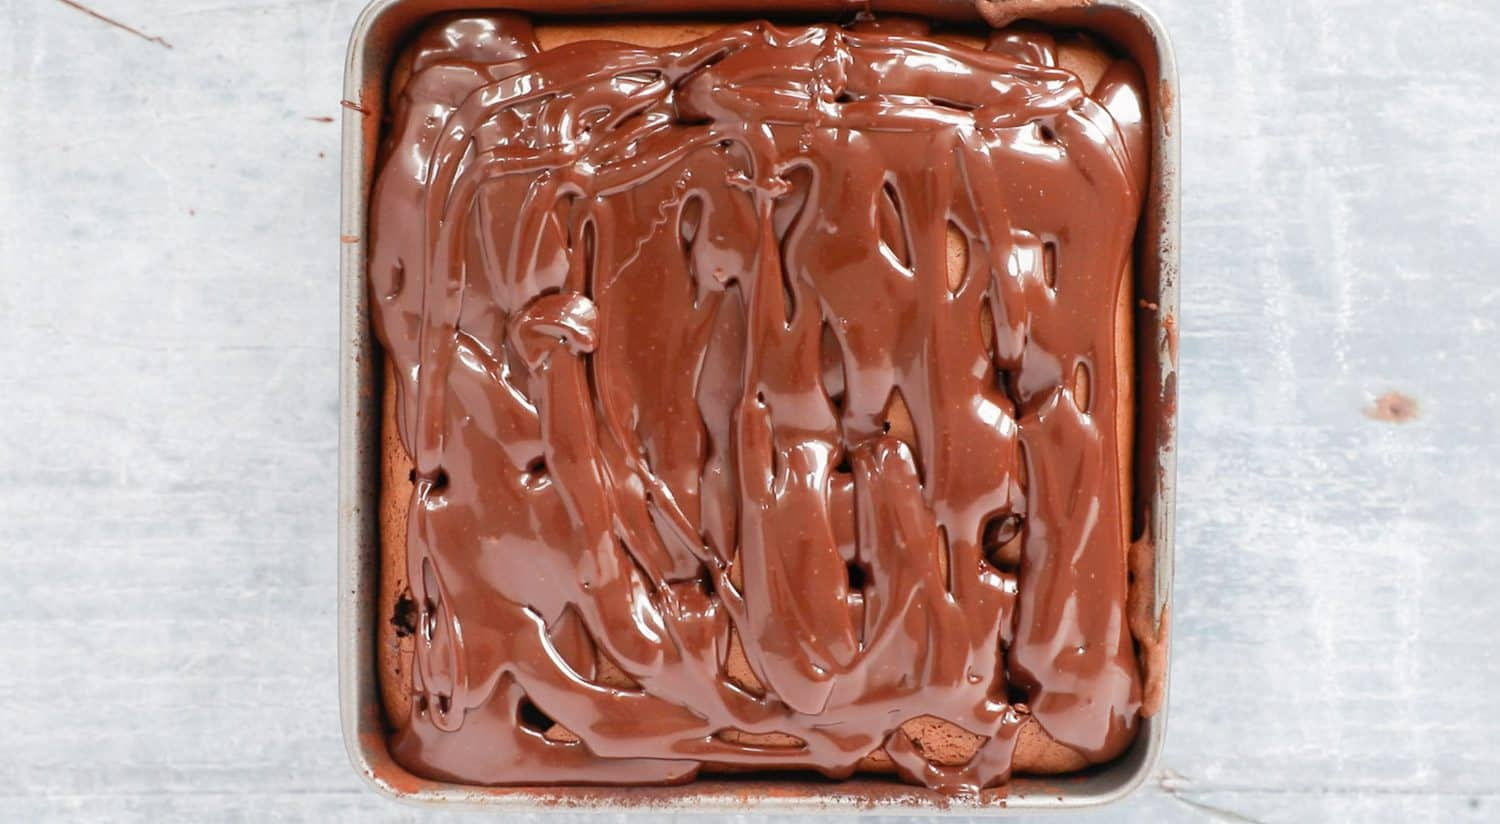 A cake with chocolate filling poured over it